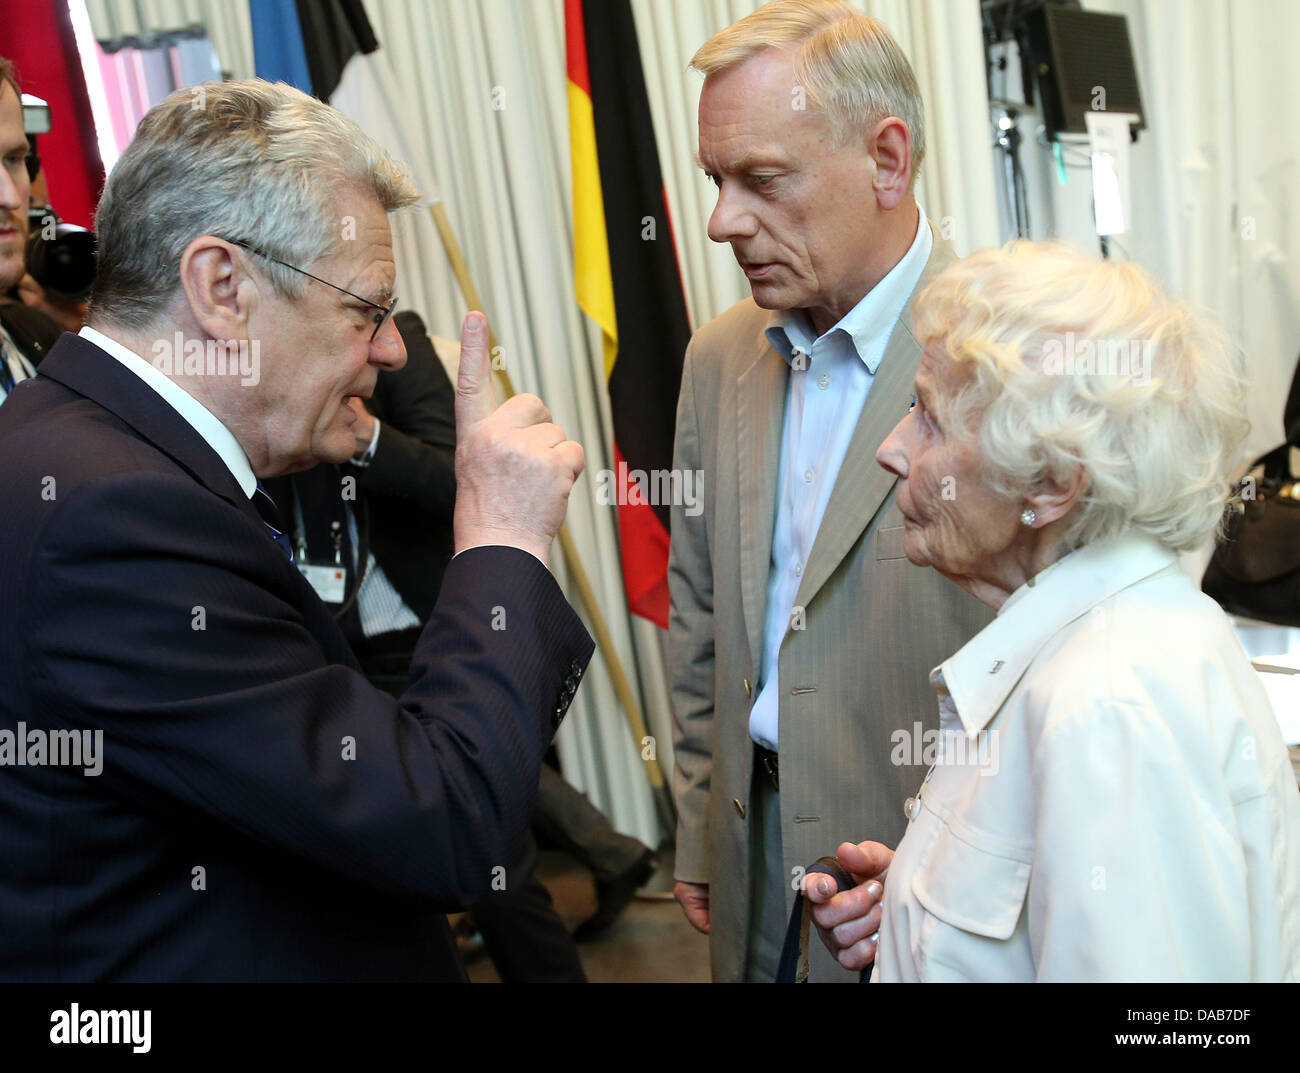 Tallinn, Estonia. 09 July 2013. German President Joachim Gauck visits the Museum of Occupations and talks with witnesses - Stock Image